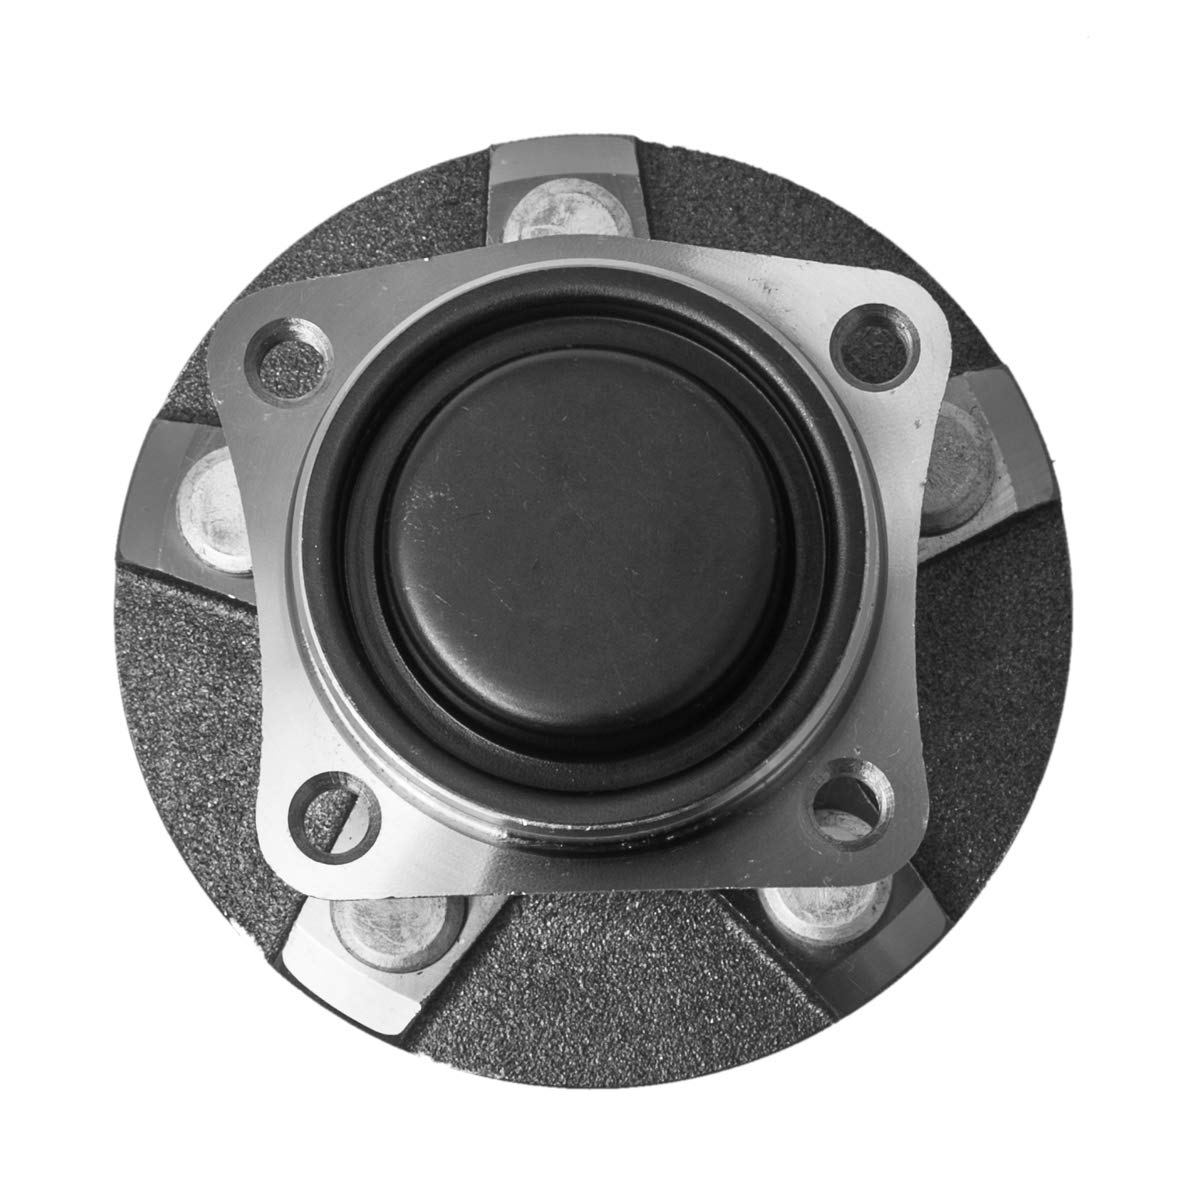 Rear Wheel Hub and Bearing Assembly Left or Right Compatible Pontiac Vibe Toyota Celica Corolla Matrix AUQDD 512218 x2 5 Lug